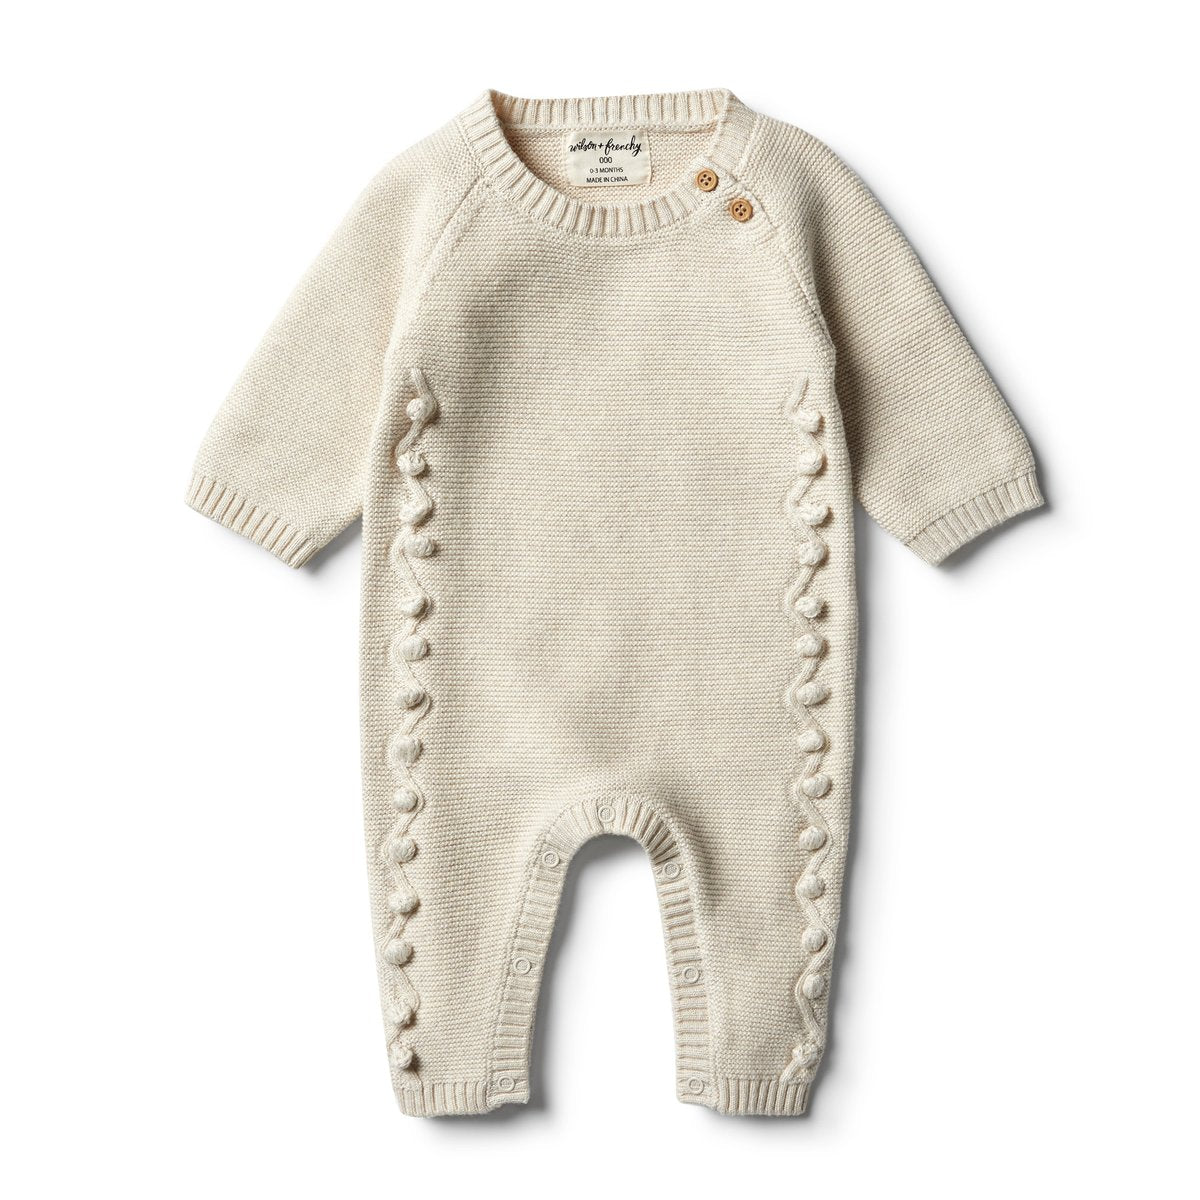 Wilson & Frenchy Oatmeal Knitted Growsuit With Baubles